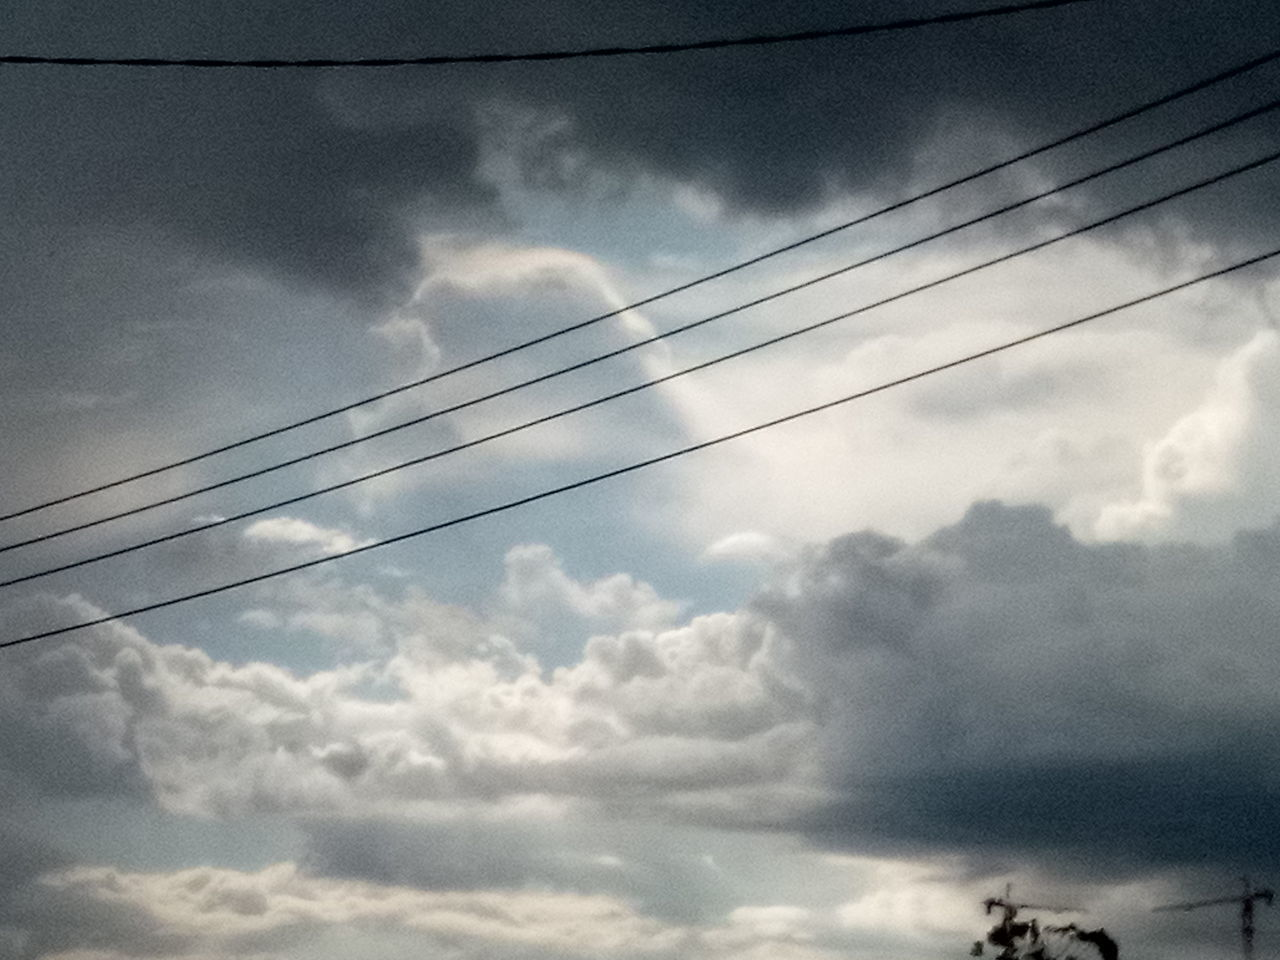 cloud - sky, sky, cable, low angle view, electricity, power line, no people, connection, day, nature, scenics - nature, beauty in nature, power supply, technology, outdoors, tranquility, fuel and power generation, tranquil scene, overcast, telephone line